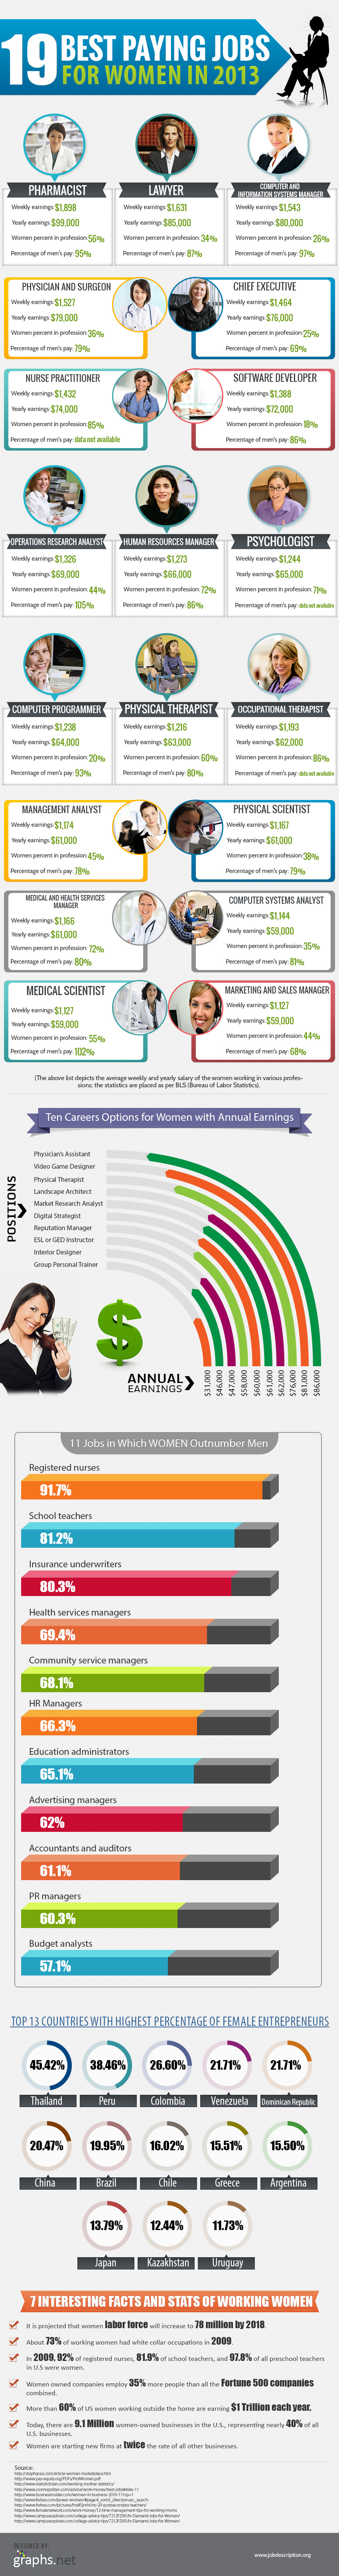 19 Best Paying Jobs For Women